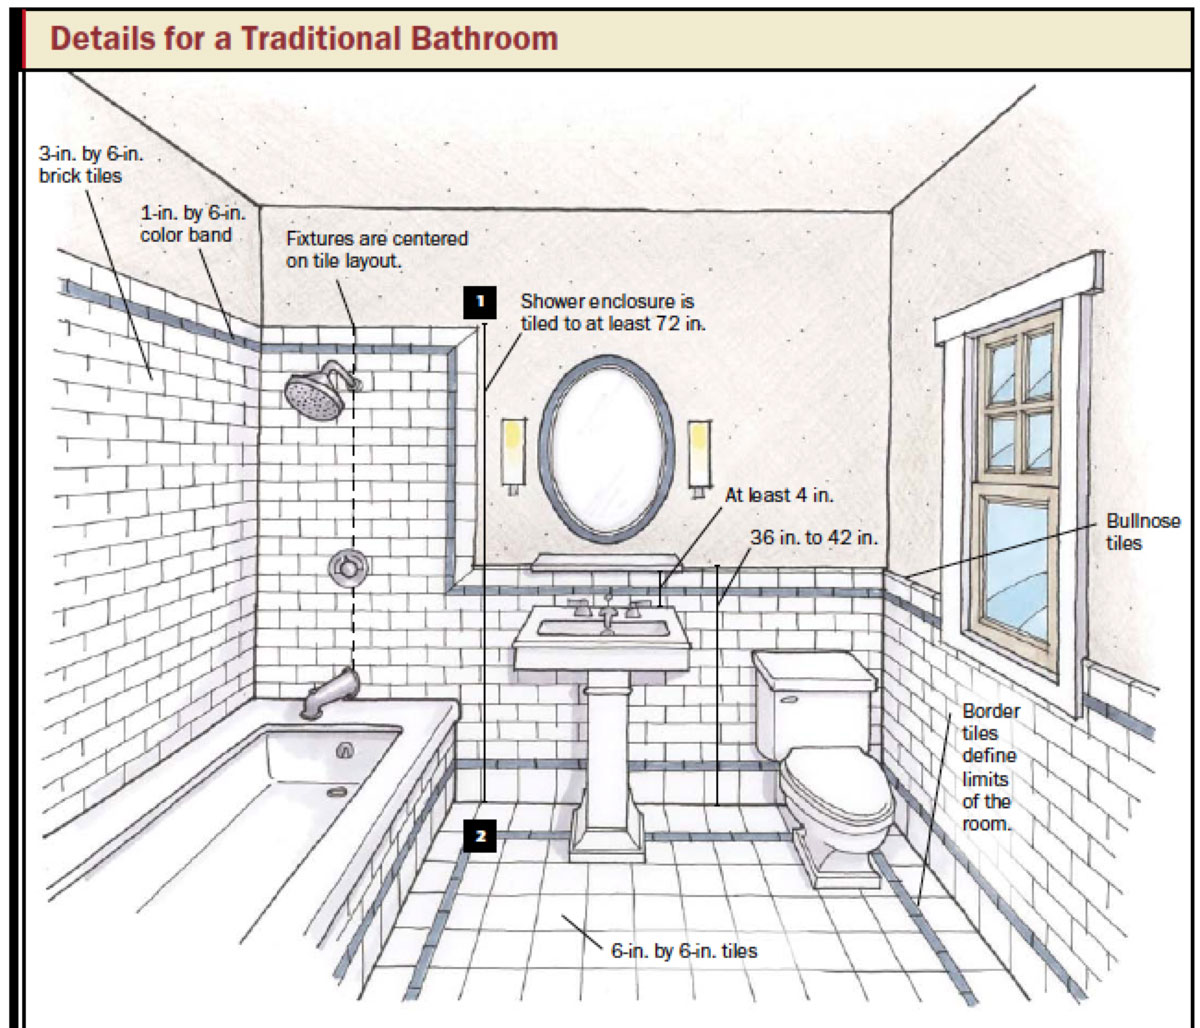 Kitchen Floor Plans With Dimensions 8 X 12 Yptzautc: Bathroom Design & Planning Tips: